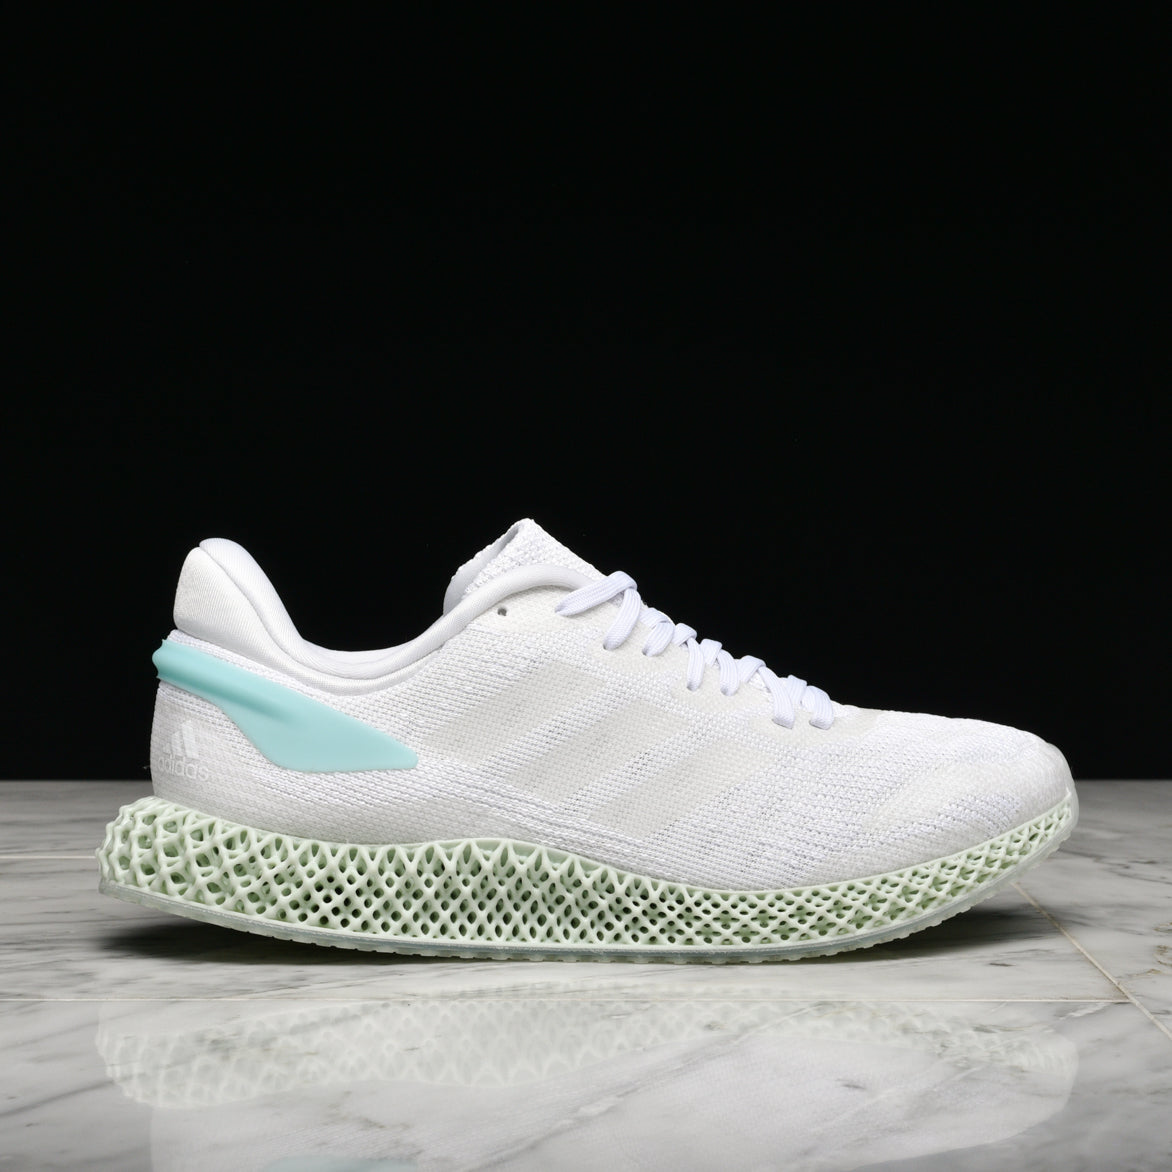 4D RUN 1.0 - CLOUD WHITE / BLUE SPIRIT